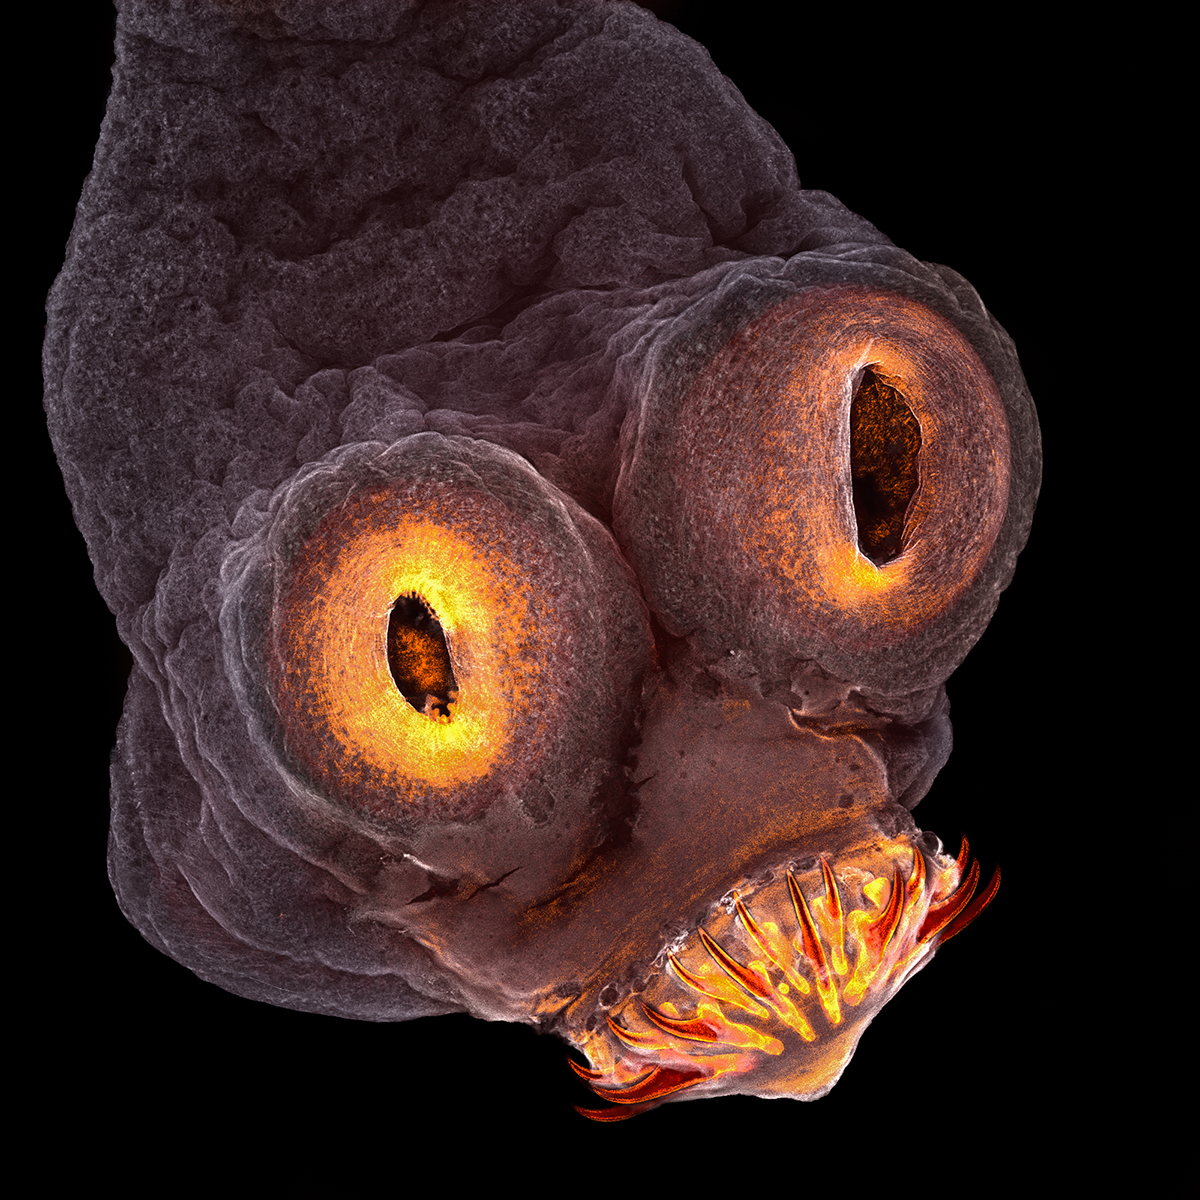 A detailed photomicrograph of a tapeworm.